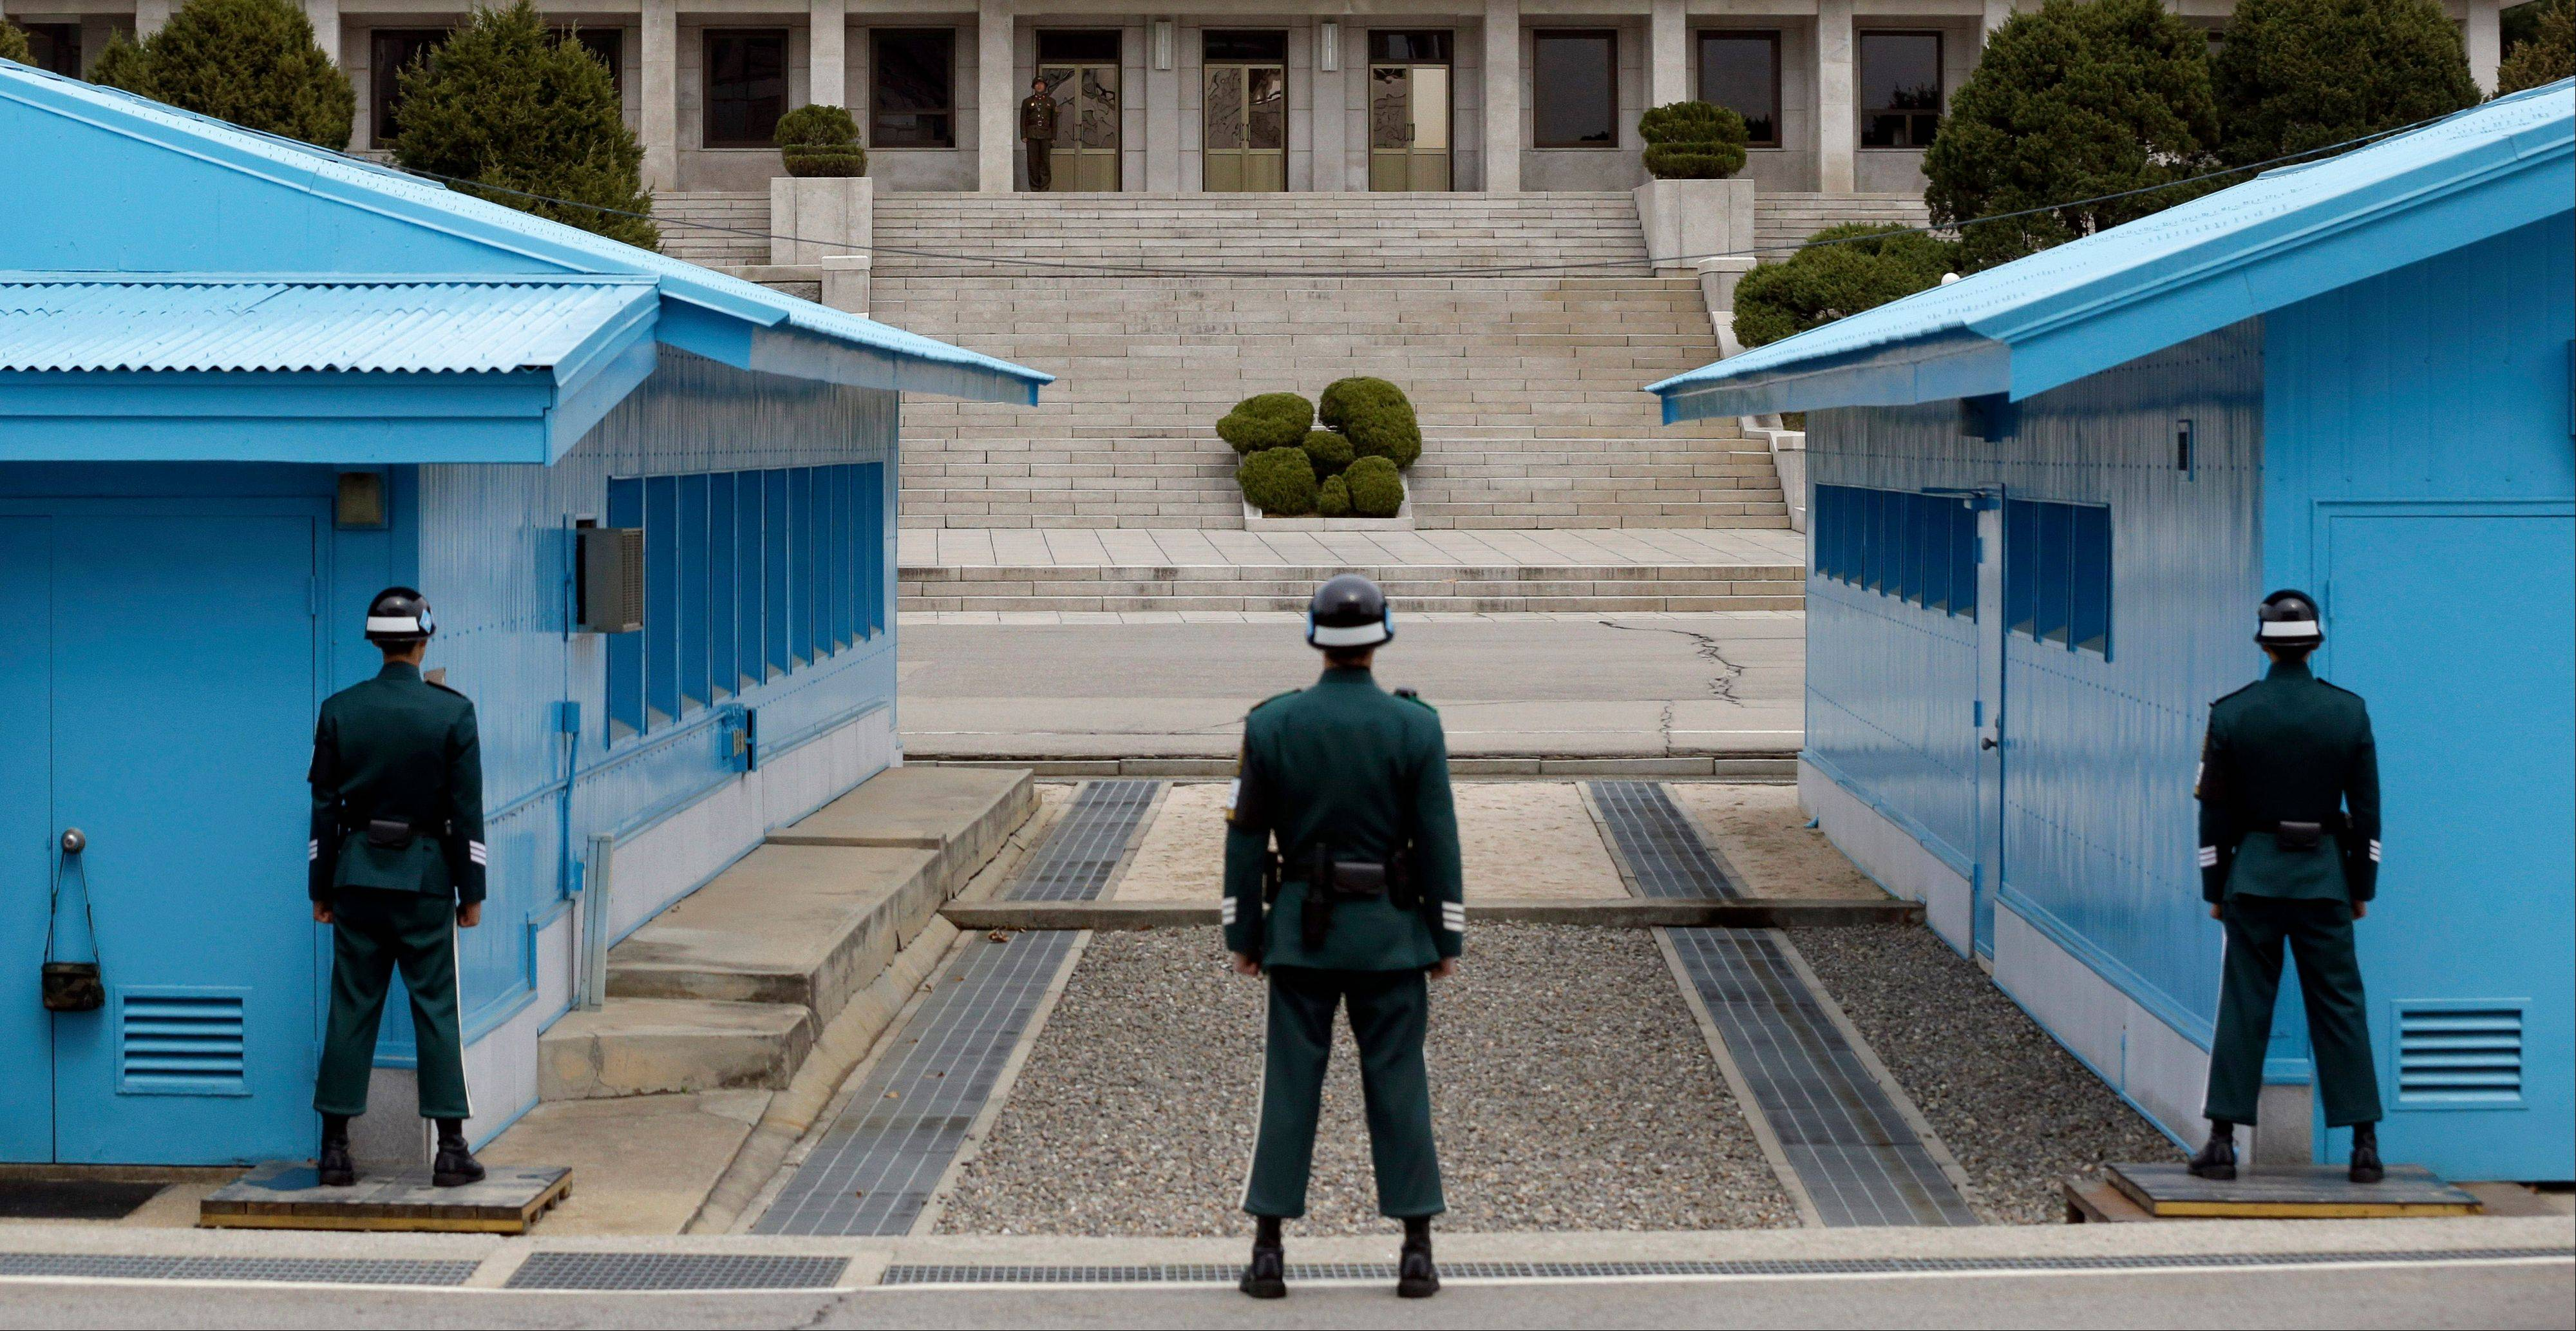 A North Korean soldier, center top, looks at the southern side as South Korean soldiers stand guard at the border village of Panmunjom, which has separated the two Koreas since the Korean Wa. The prospect of a North Korean missile launch is �considerably high,� South Korea�s foreign minister told lawmakers Wednesday as Pyongyang prepared to mark the April 15 birthday of its founder, historically a time when it seeks to draw the world�s attention with dramatic displays of military power.